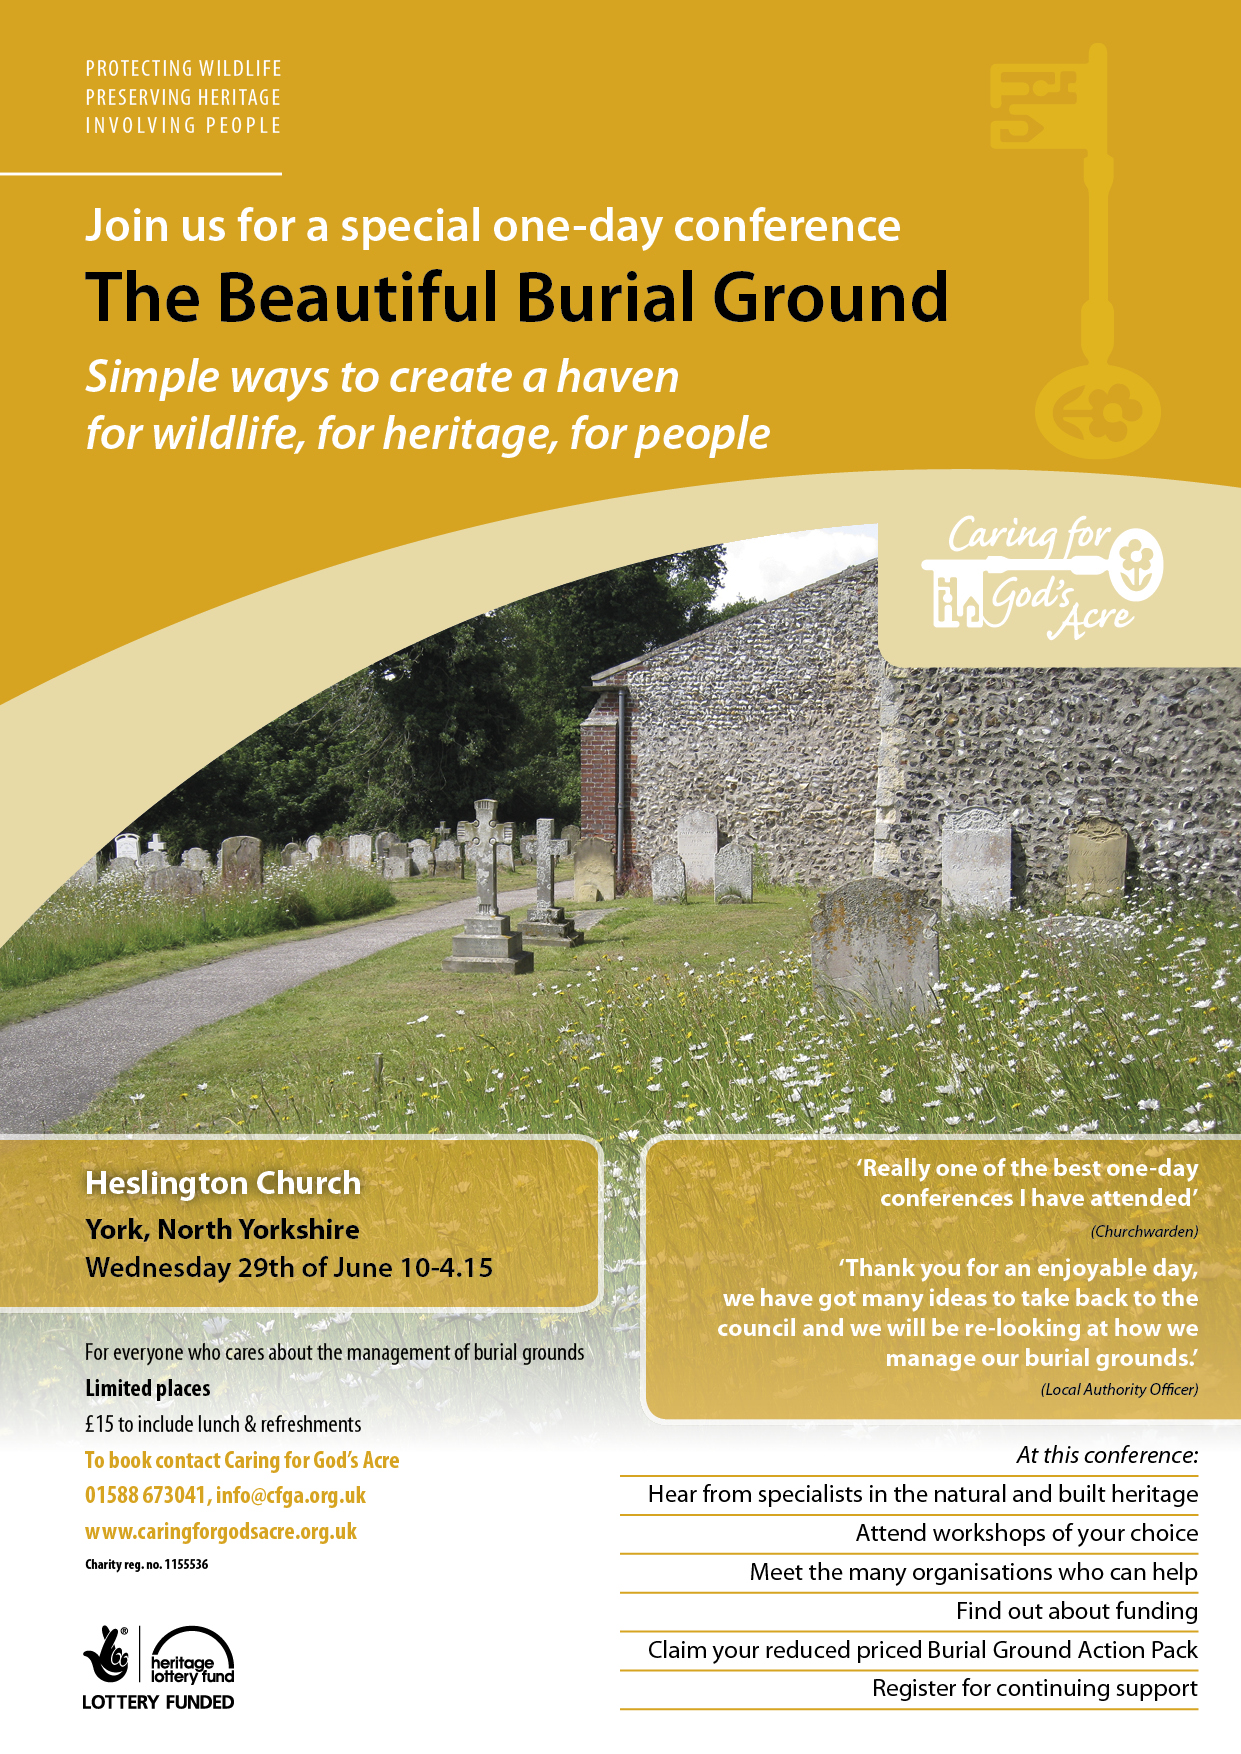 The Beautiful Burial Ground conference